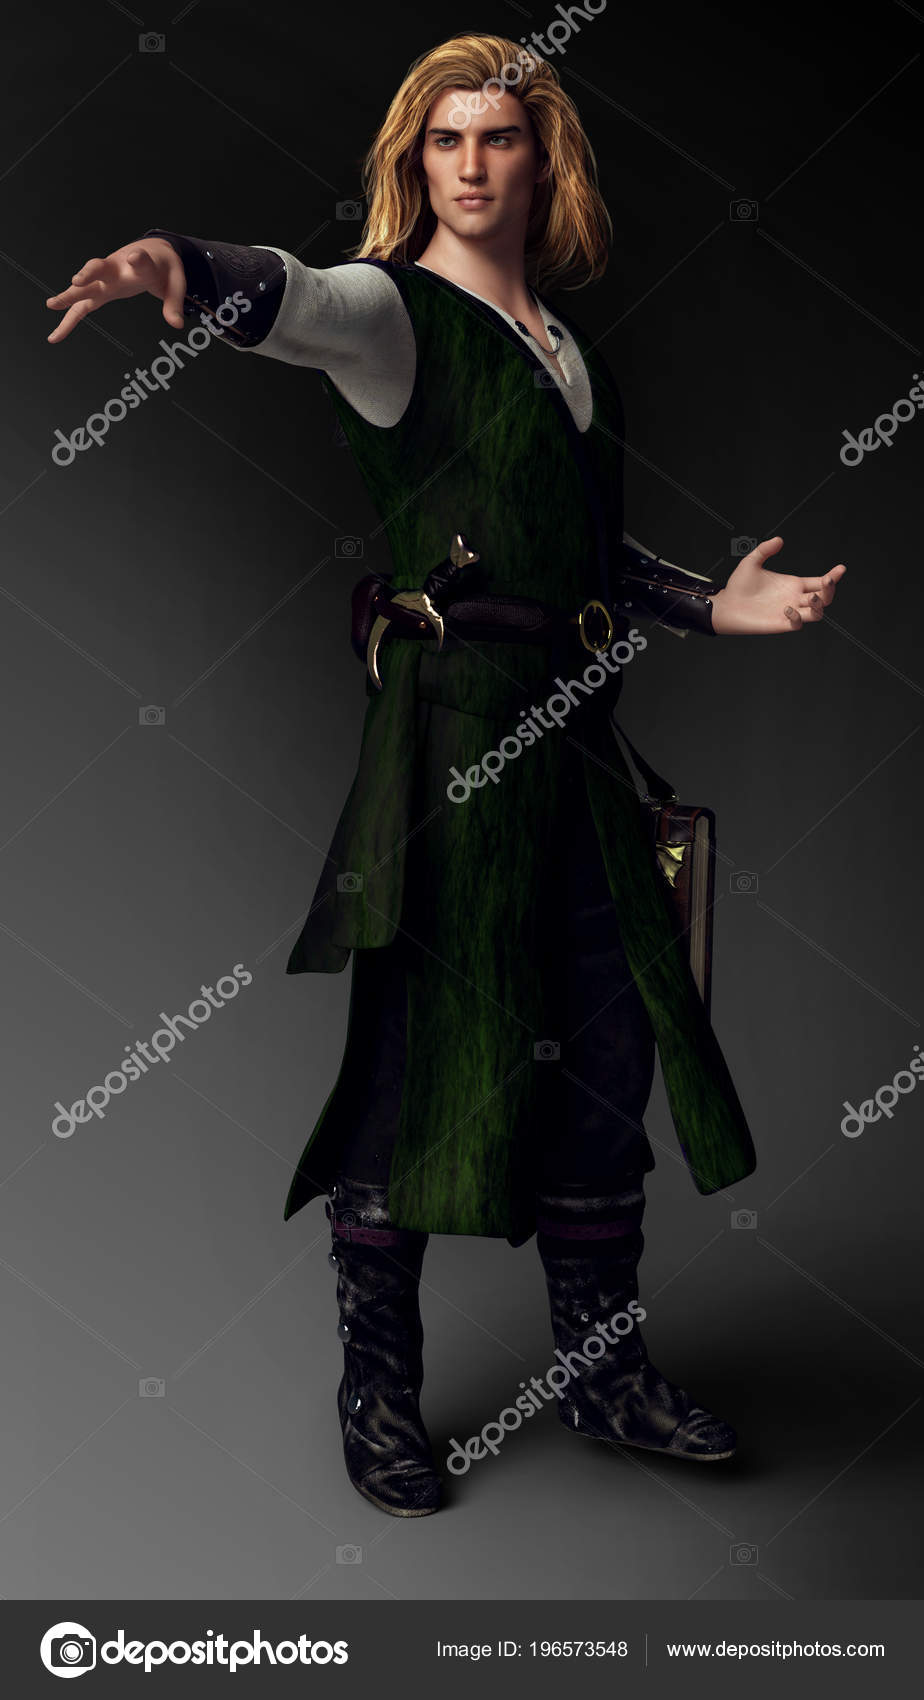 Blonde Hair Mage Handsome Fantasy Male Mage Long Blonde Hair Robes Stock Photo C Ravven 196573548